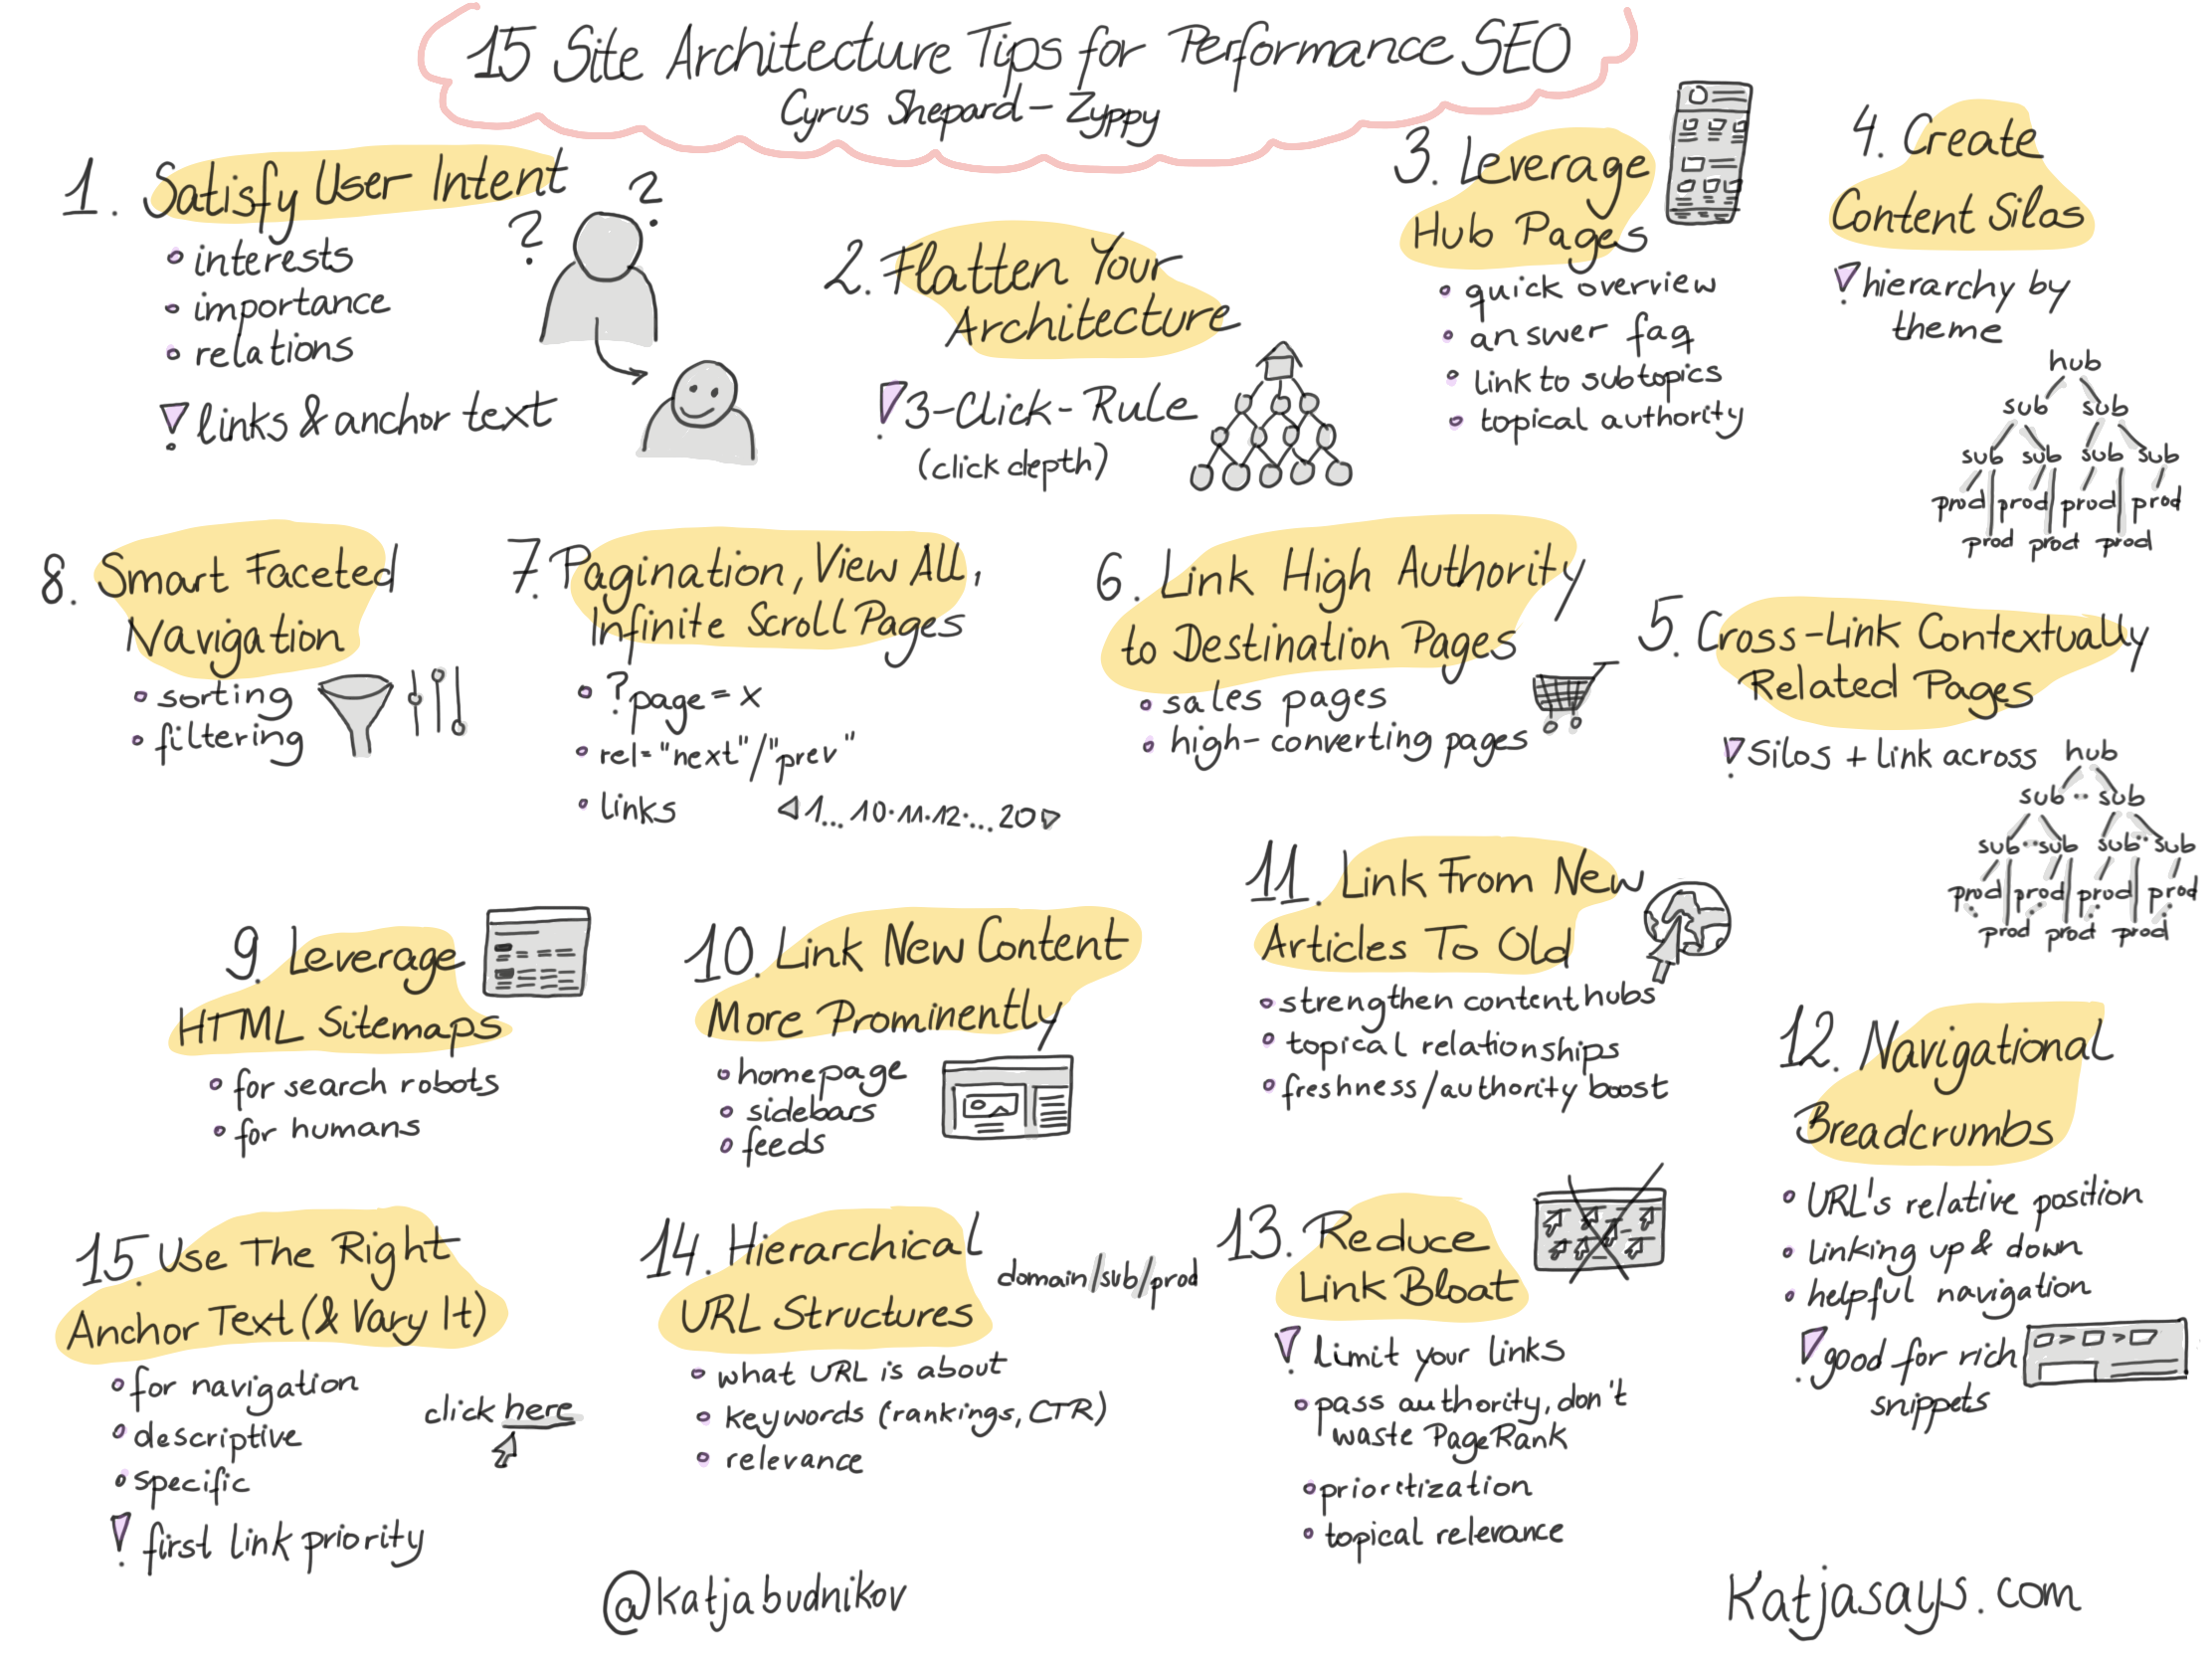 15 Site Architecture Tips For Performance SEO Sketchnote